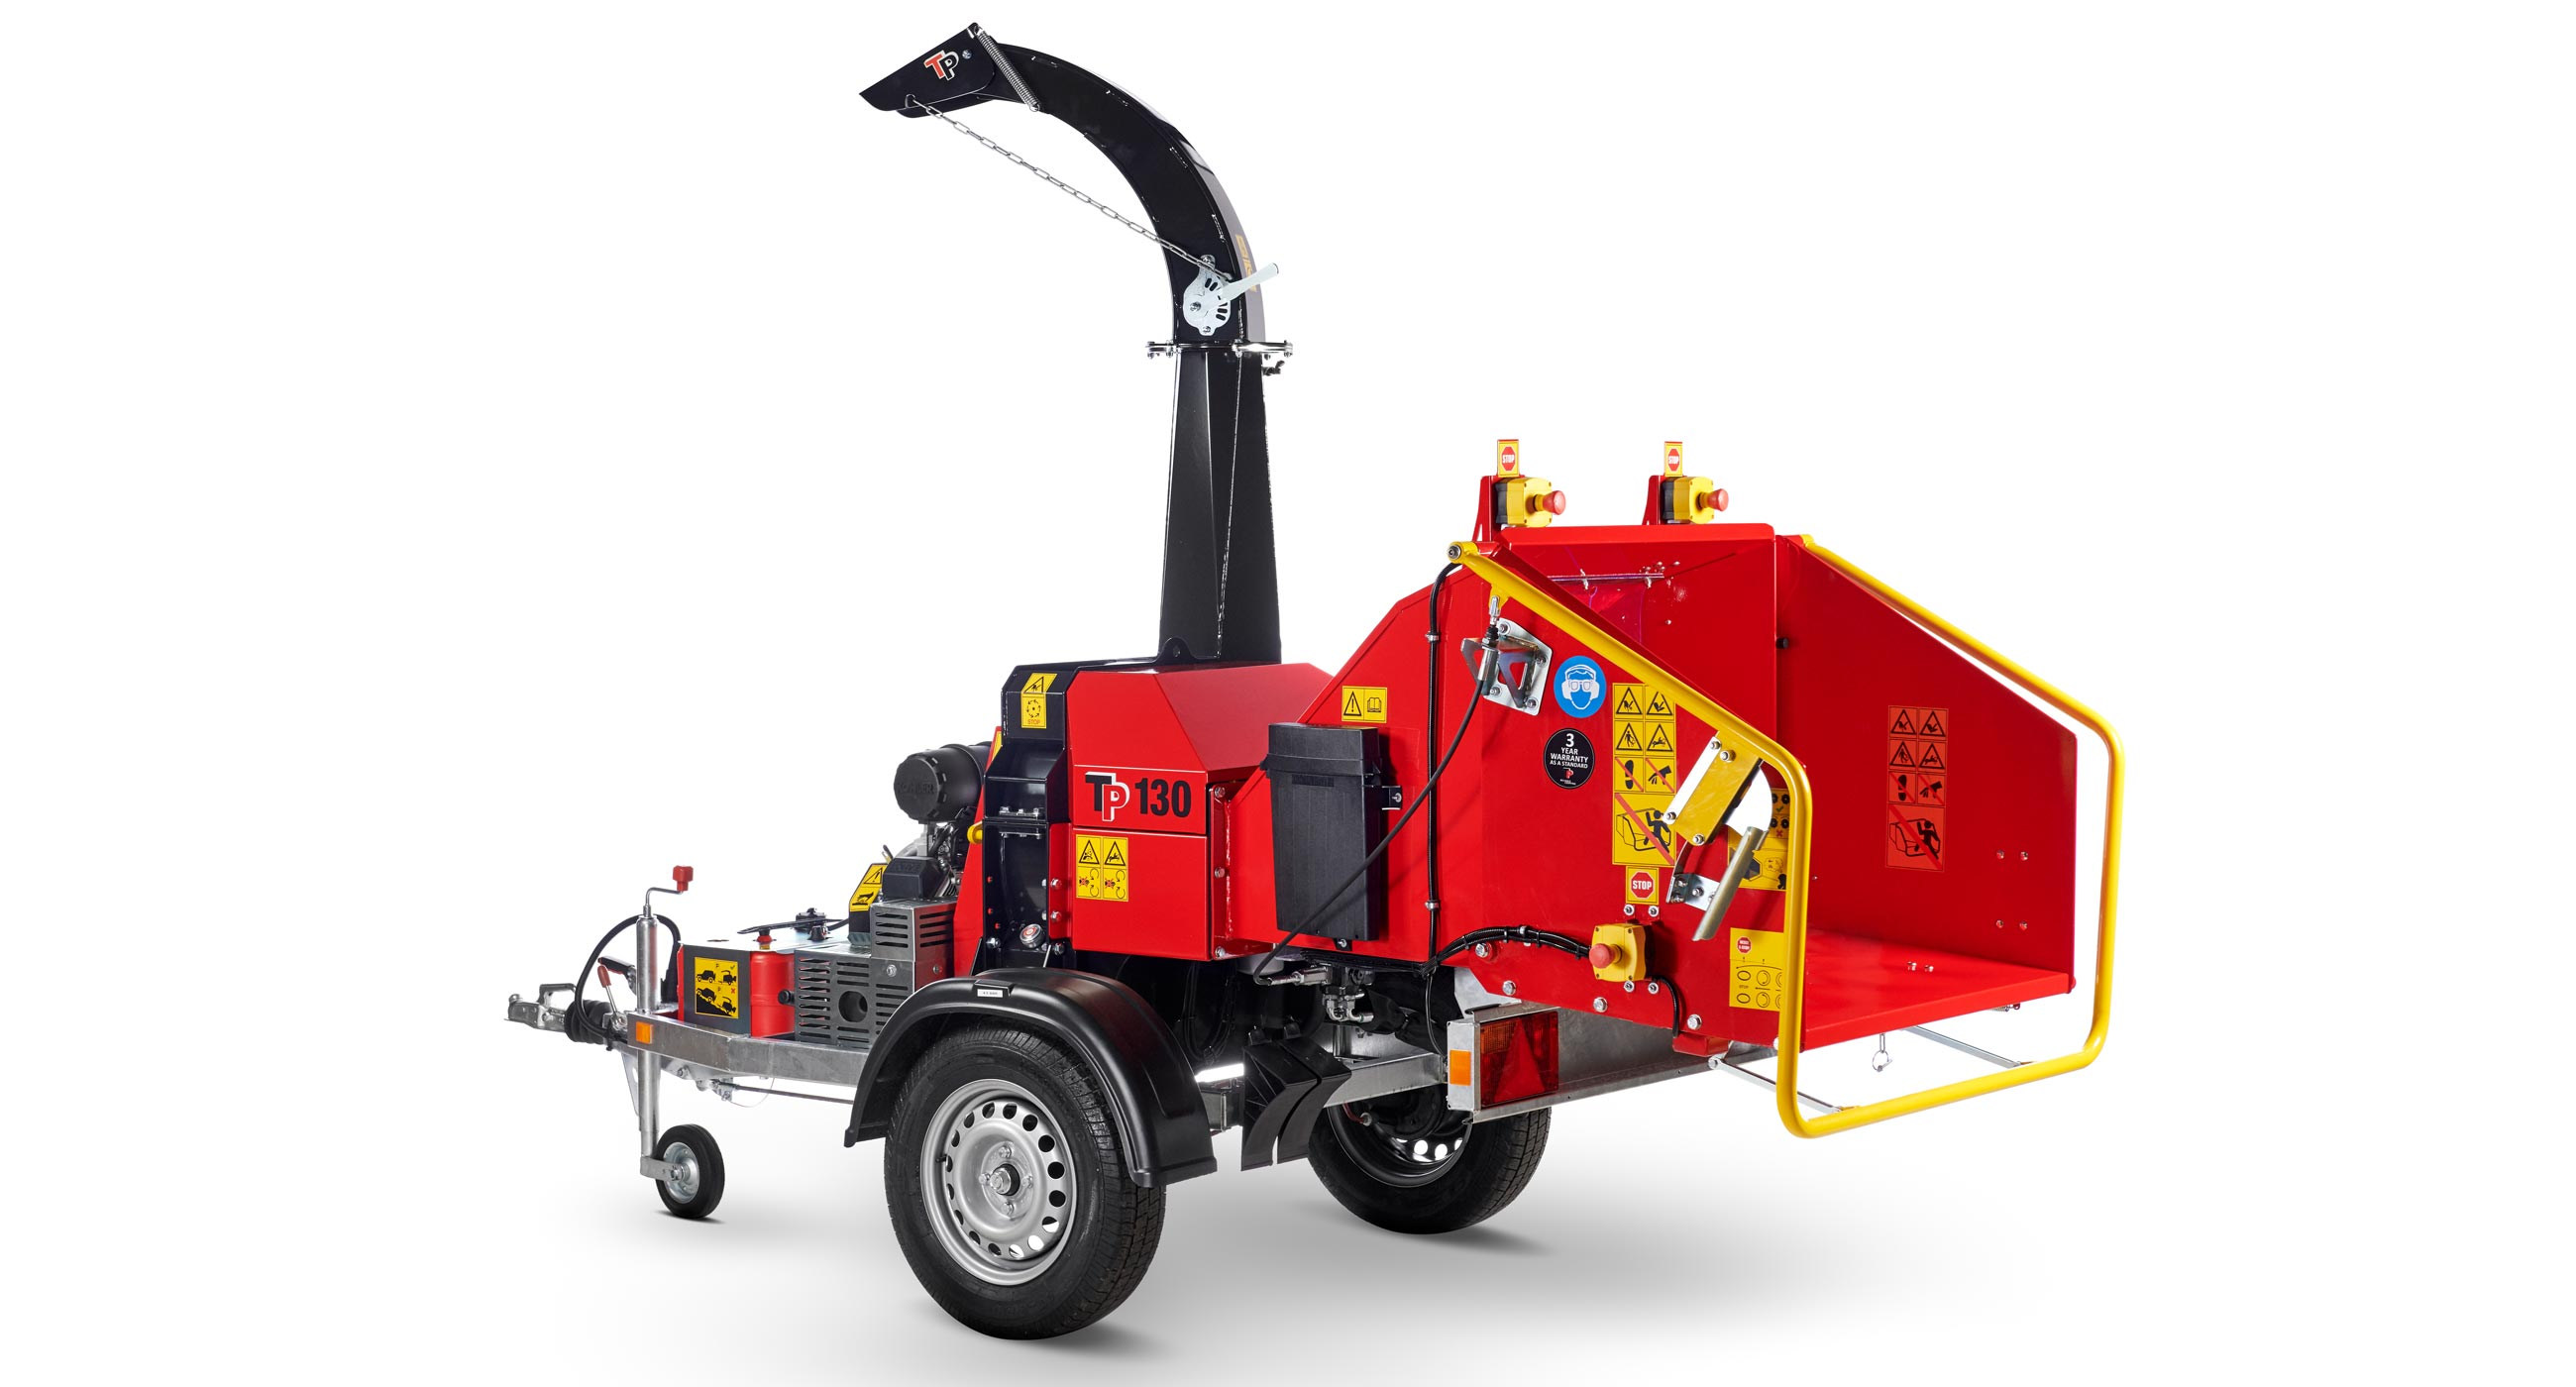 Linddana TP 130 Mobile Chipper Mulcher